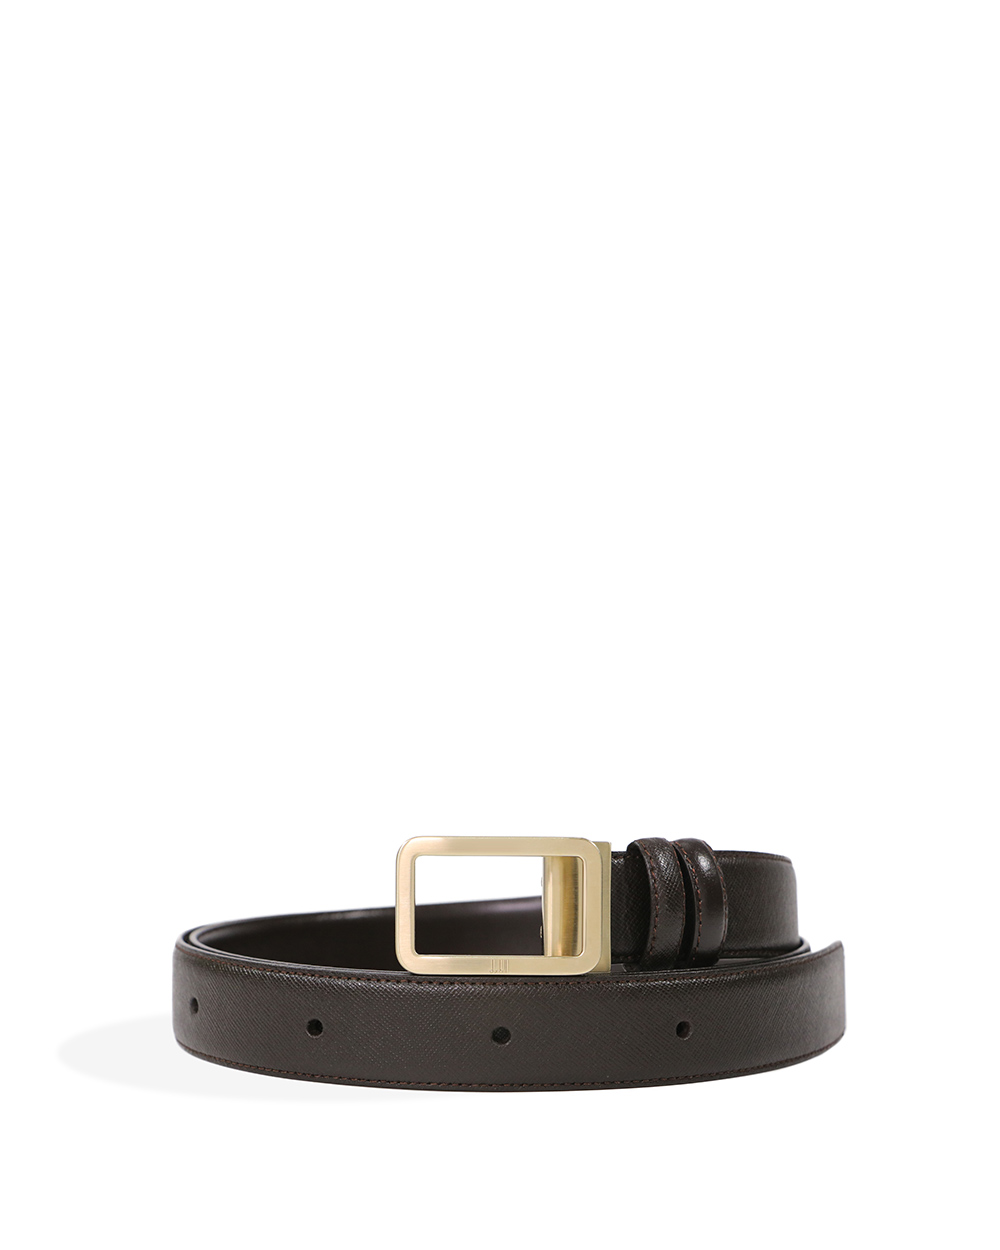 Light Gold Rounded Frame Buckle Leather Belt